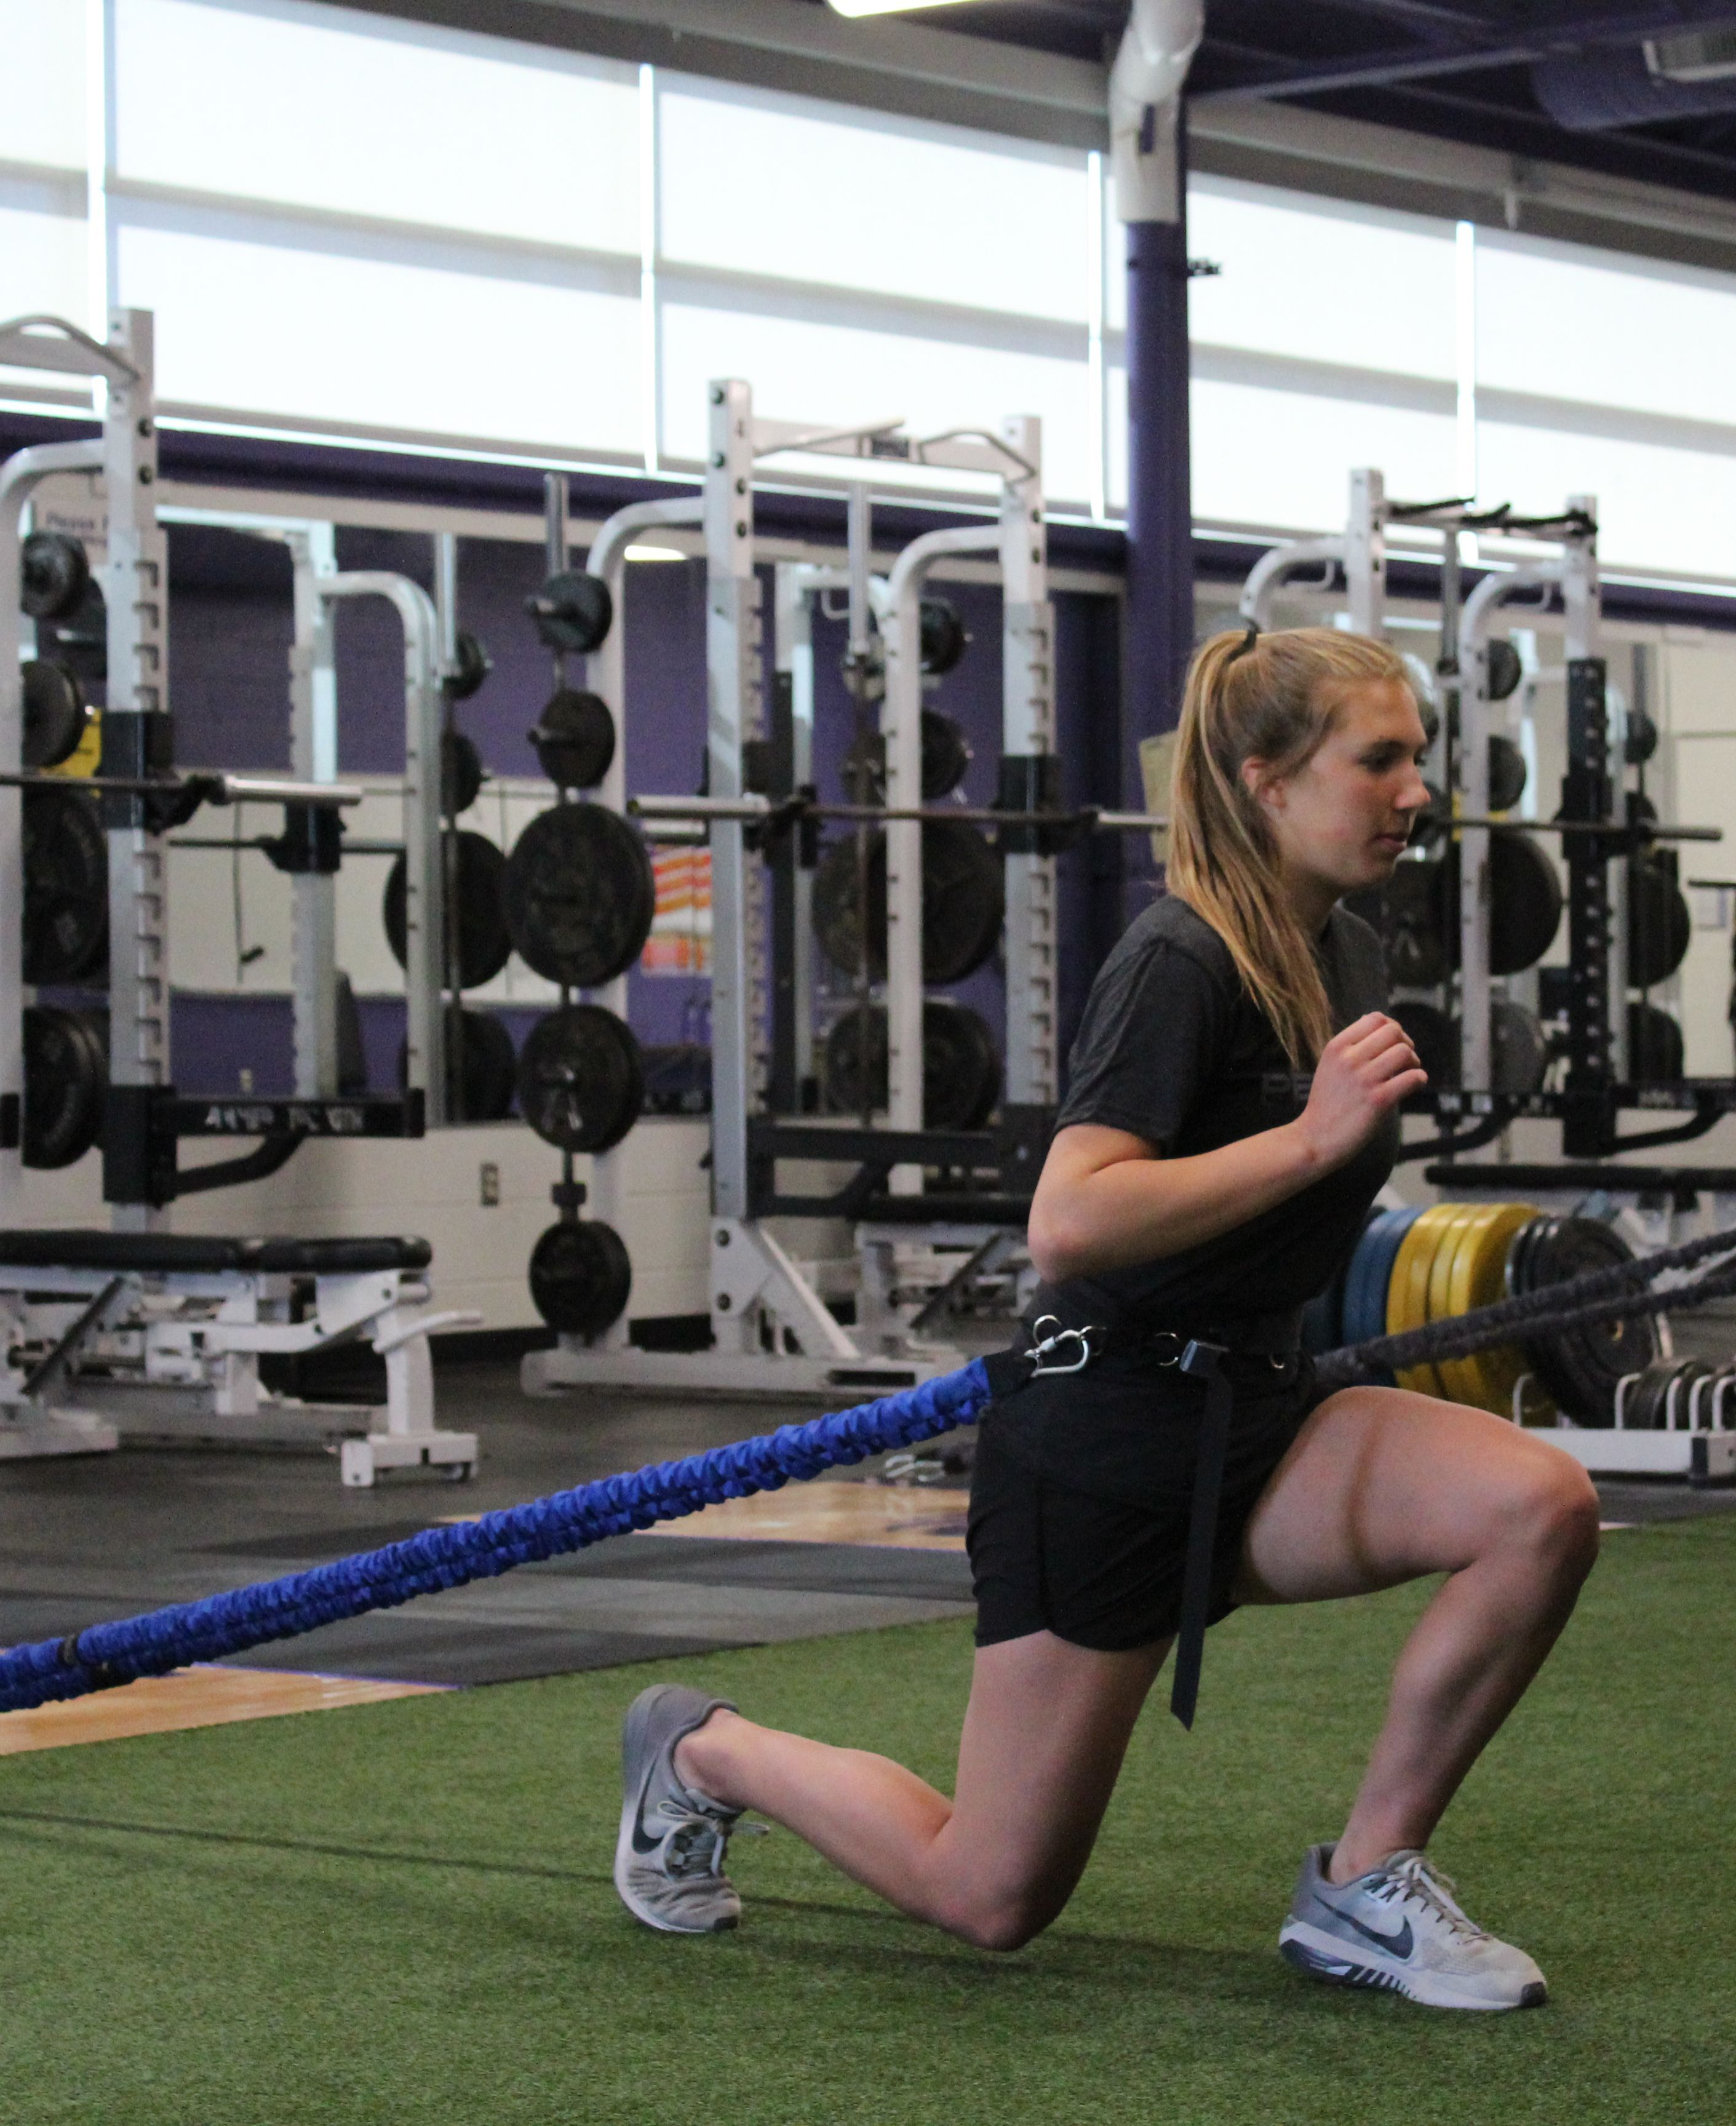 Training The Female Athlete Ask The Experts Perform X Training Systems Female Athletes Athlete Strength And Conditioning Coach